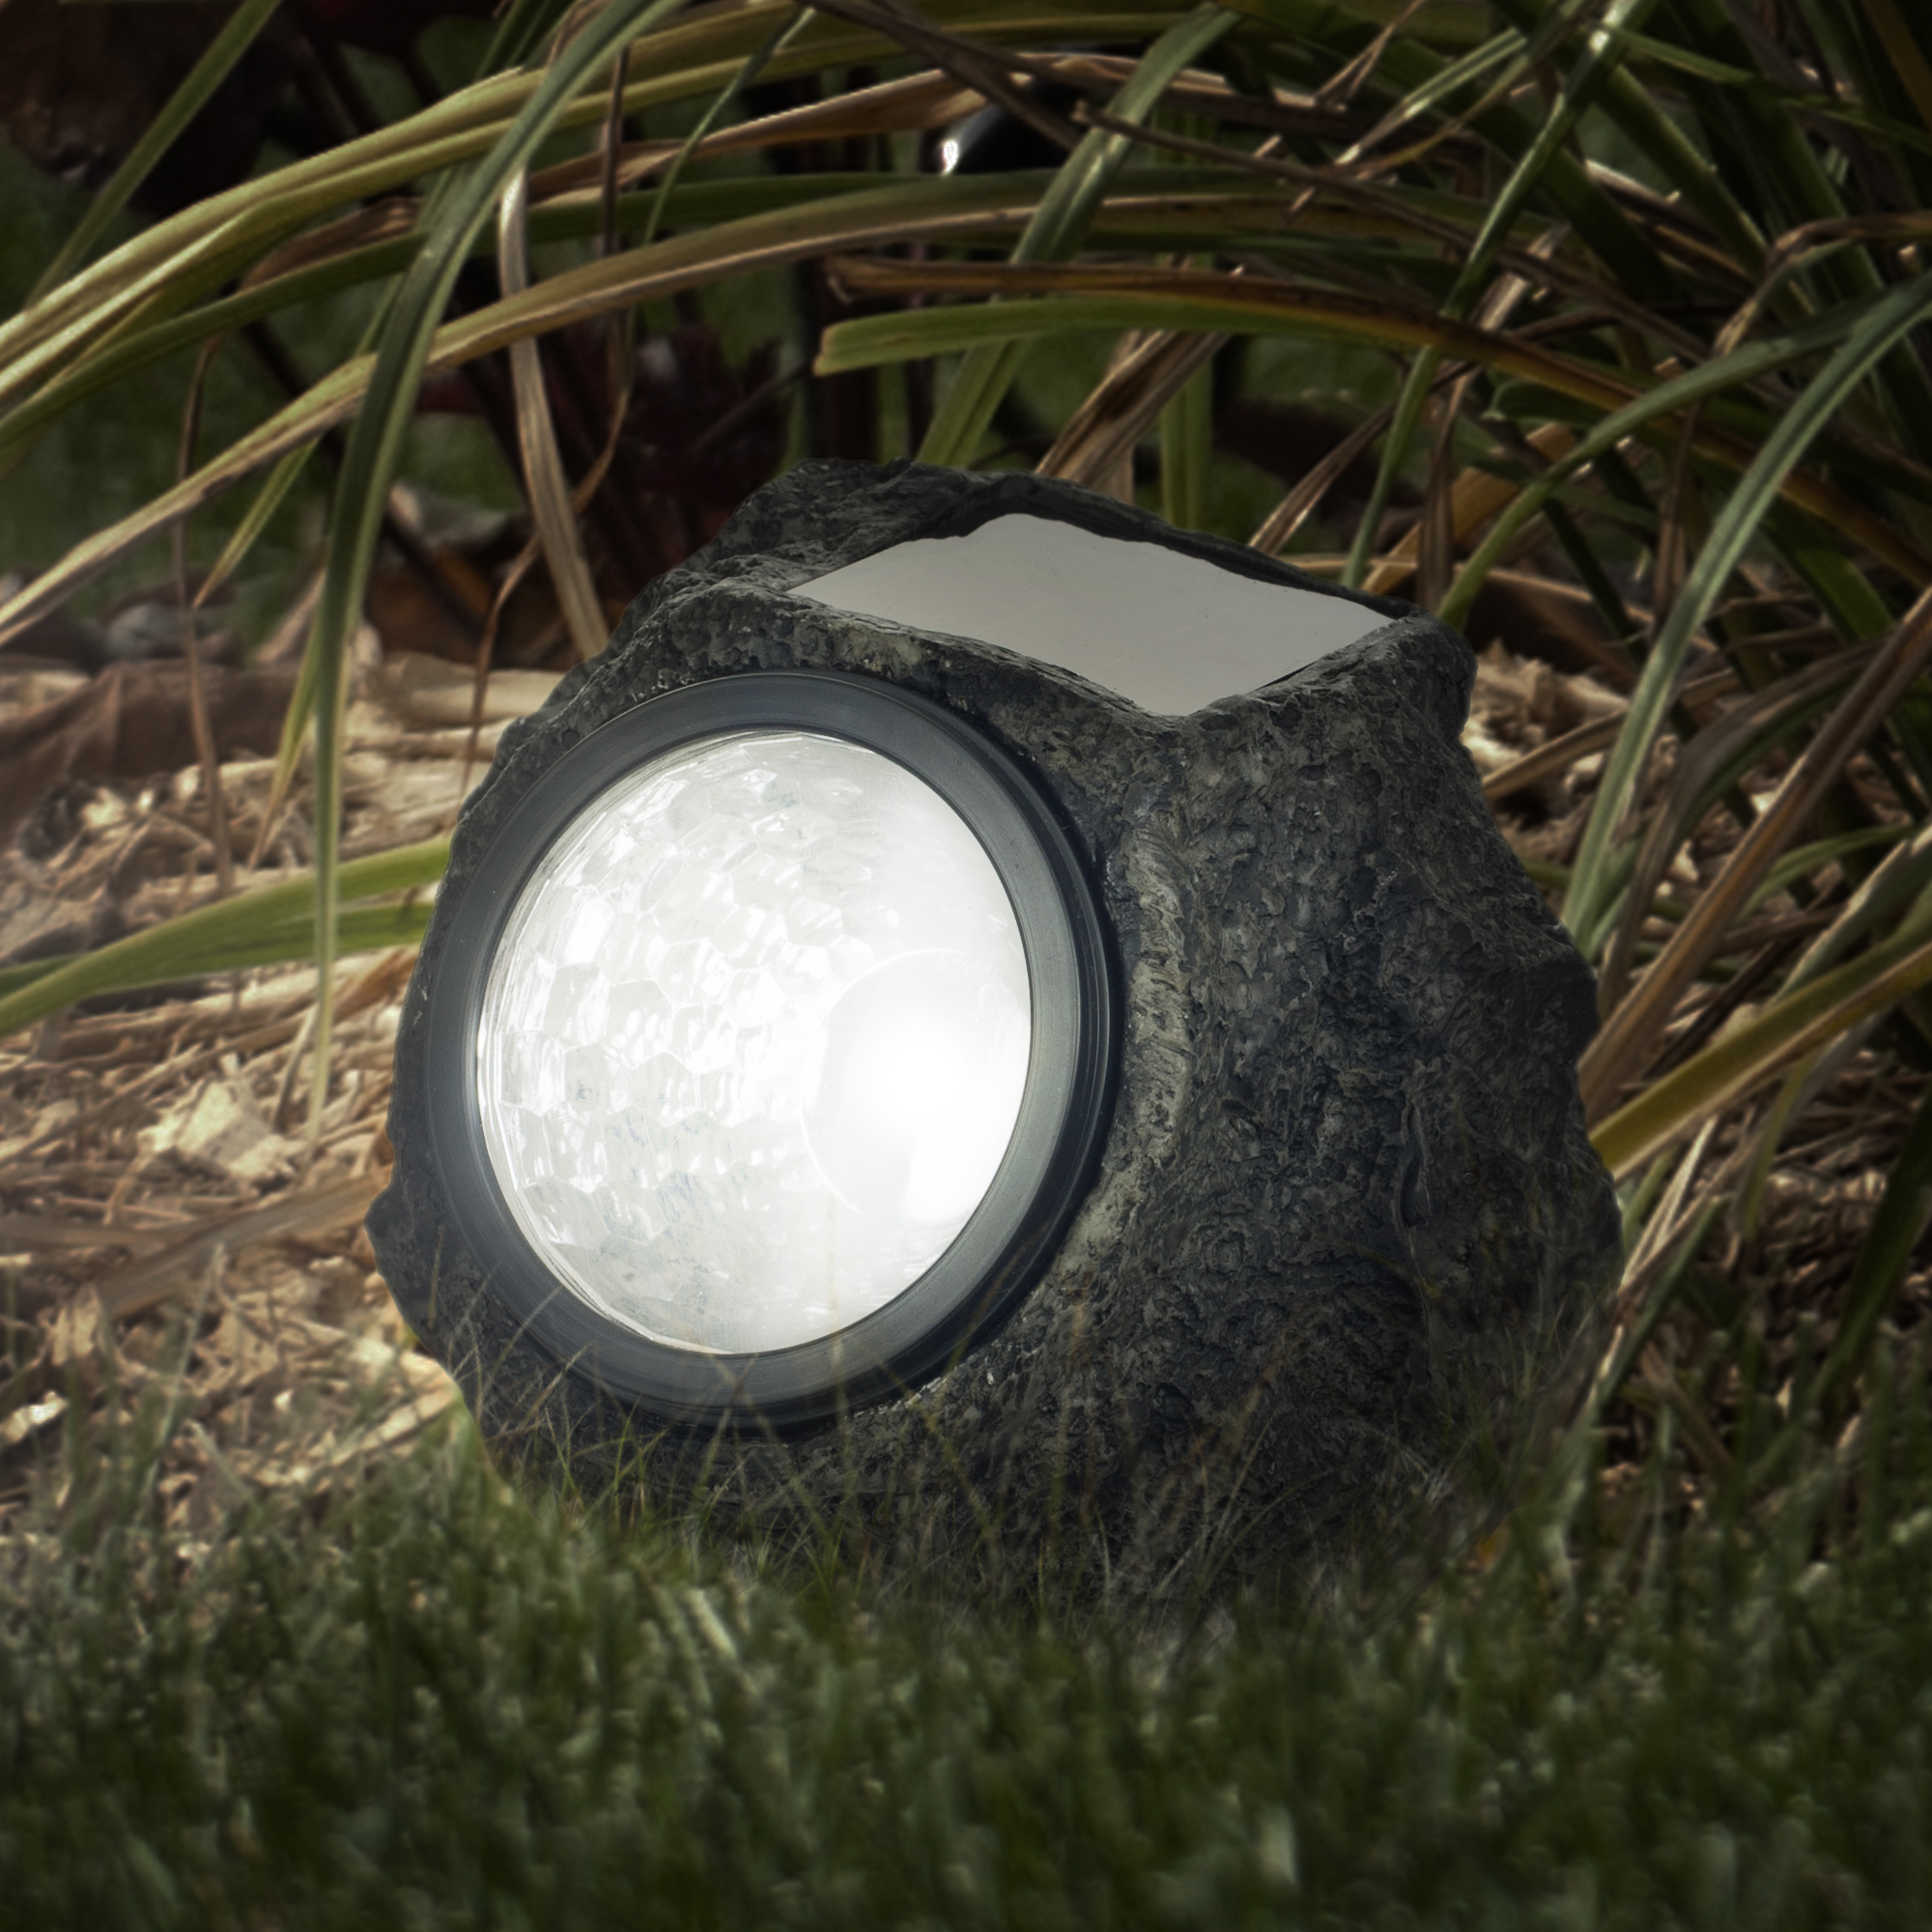 LED Solar Rock Landscaping Lights Set of 4 by Pure Garden by Trademark Global LLC